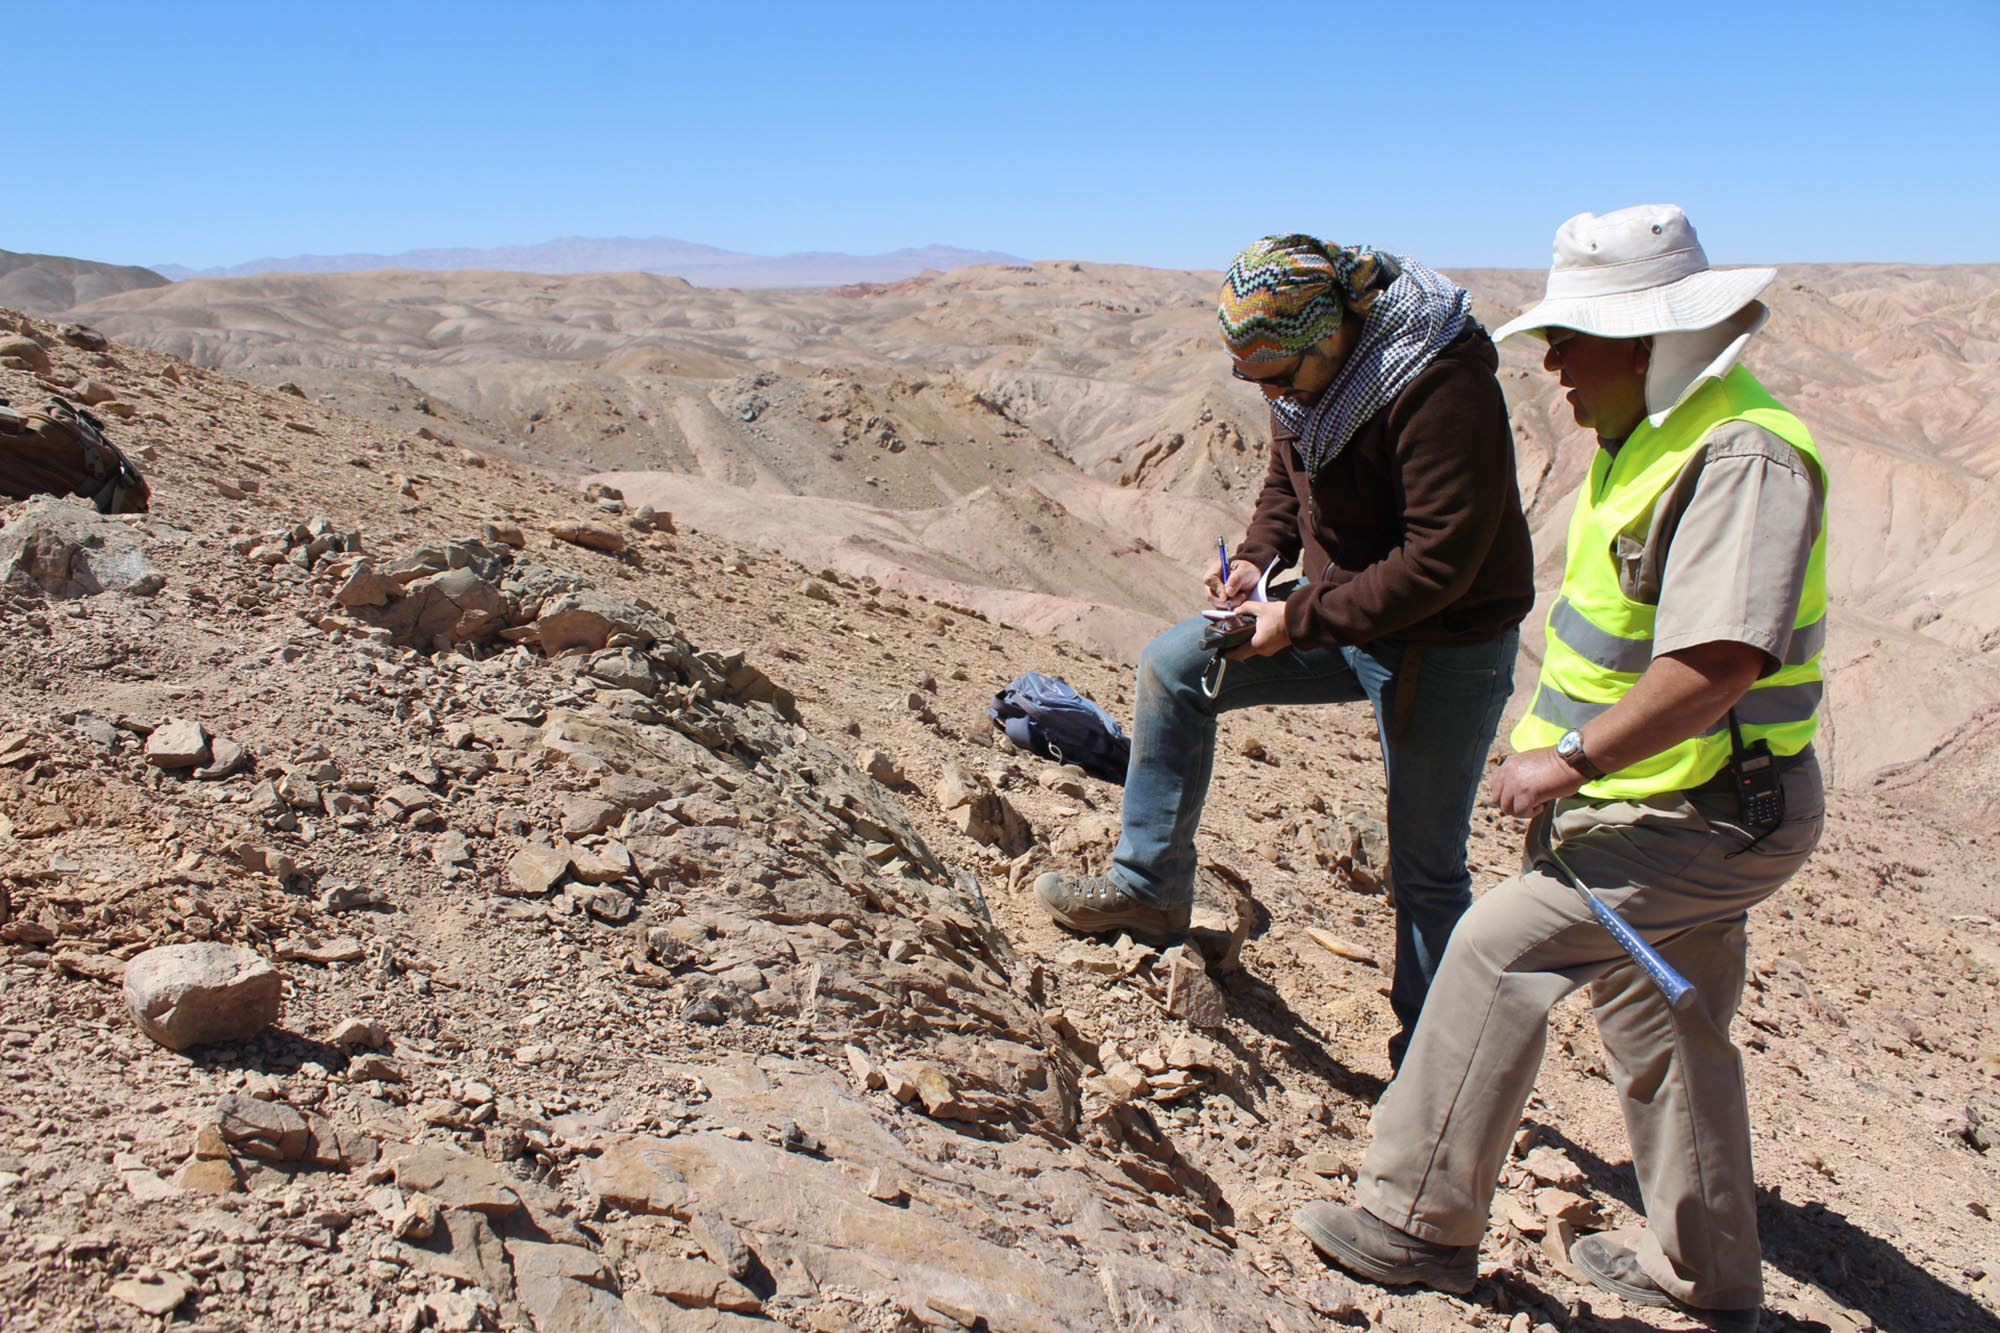 Juras-sea Park: Sea Dinosaurs Unearthed in Chilean Desert Show the Truth About Climate Change